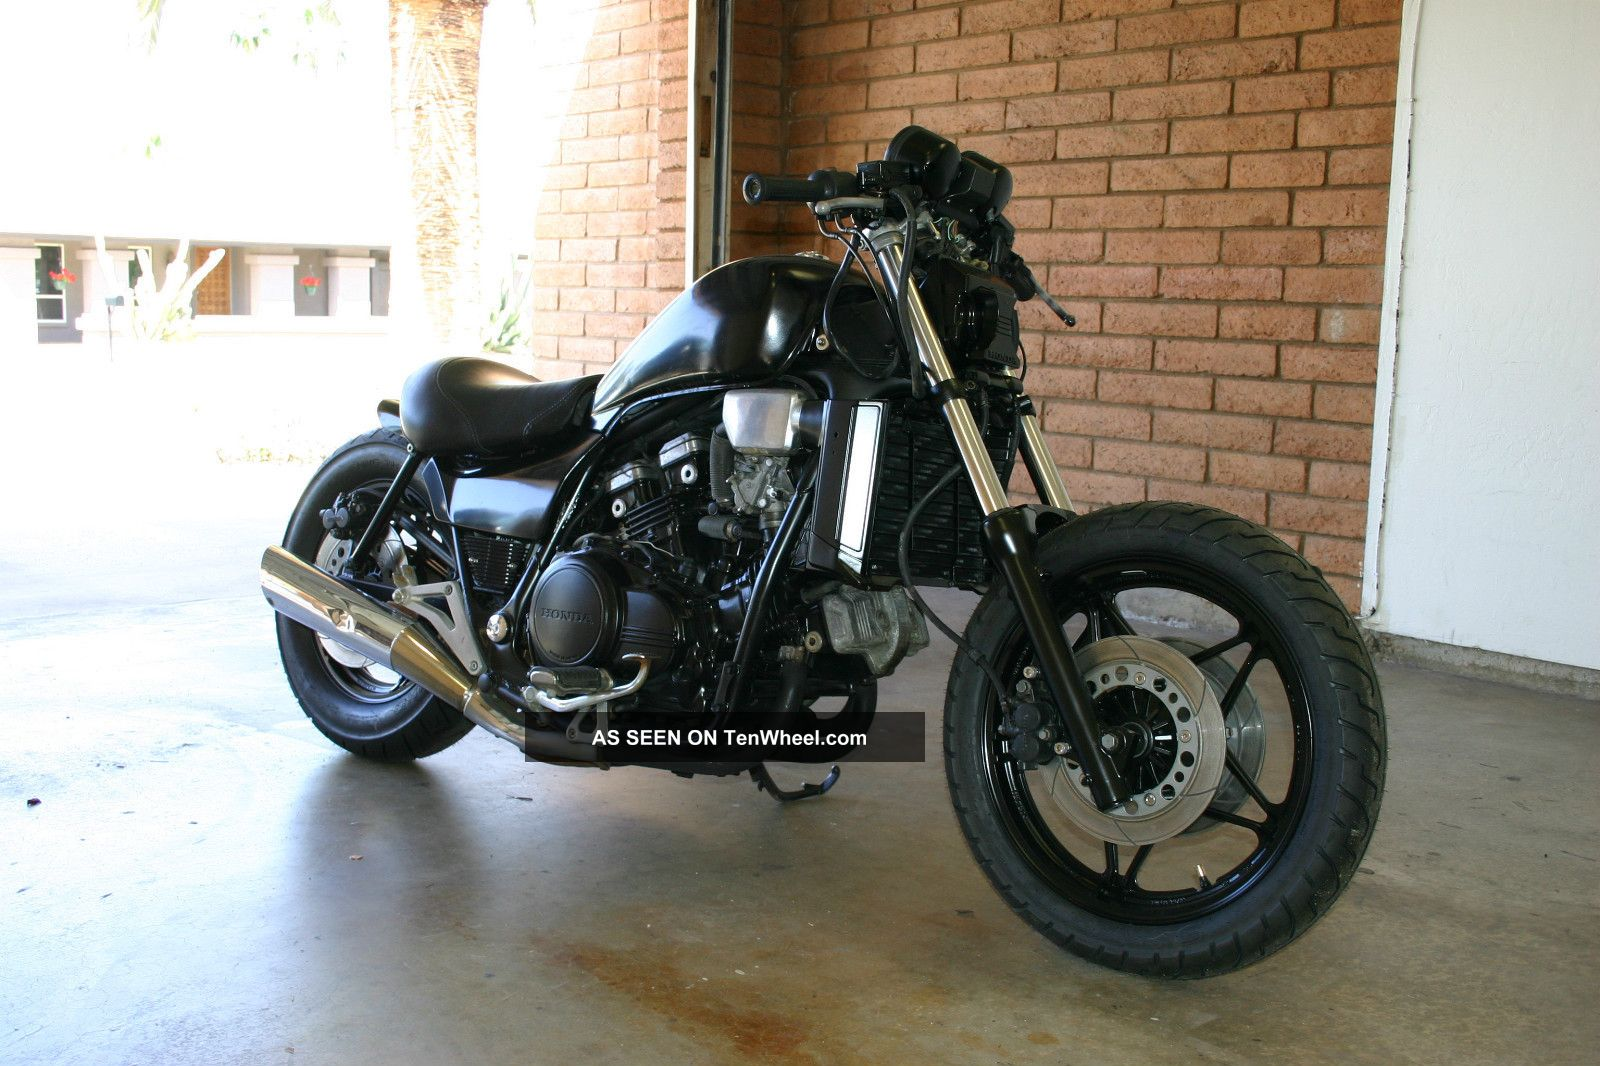 Honda Shadow Vlx Engine Diagram further Diagrams furthermore 1983 Honda Shadow Vt750 Wiring Diagram besides 1986 Honda Goldwing 1200 Wiring Diagram likewise Honda Shadow 1986 Vt700c Fuse Box. on 1985 honda vt700 wiring diagram